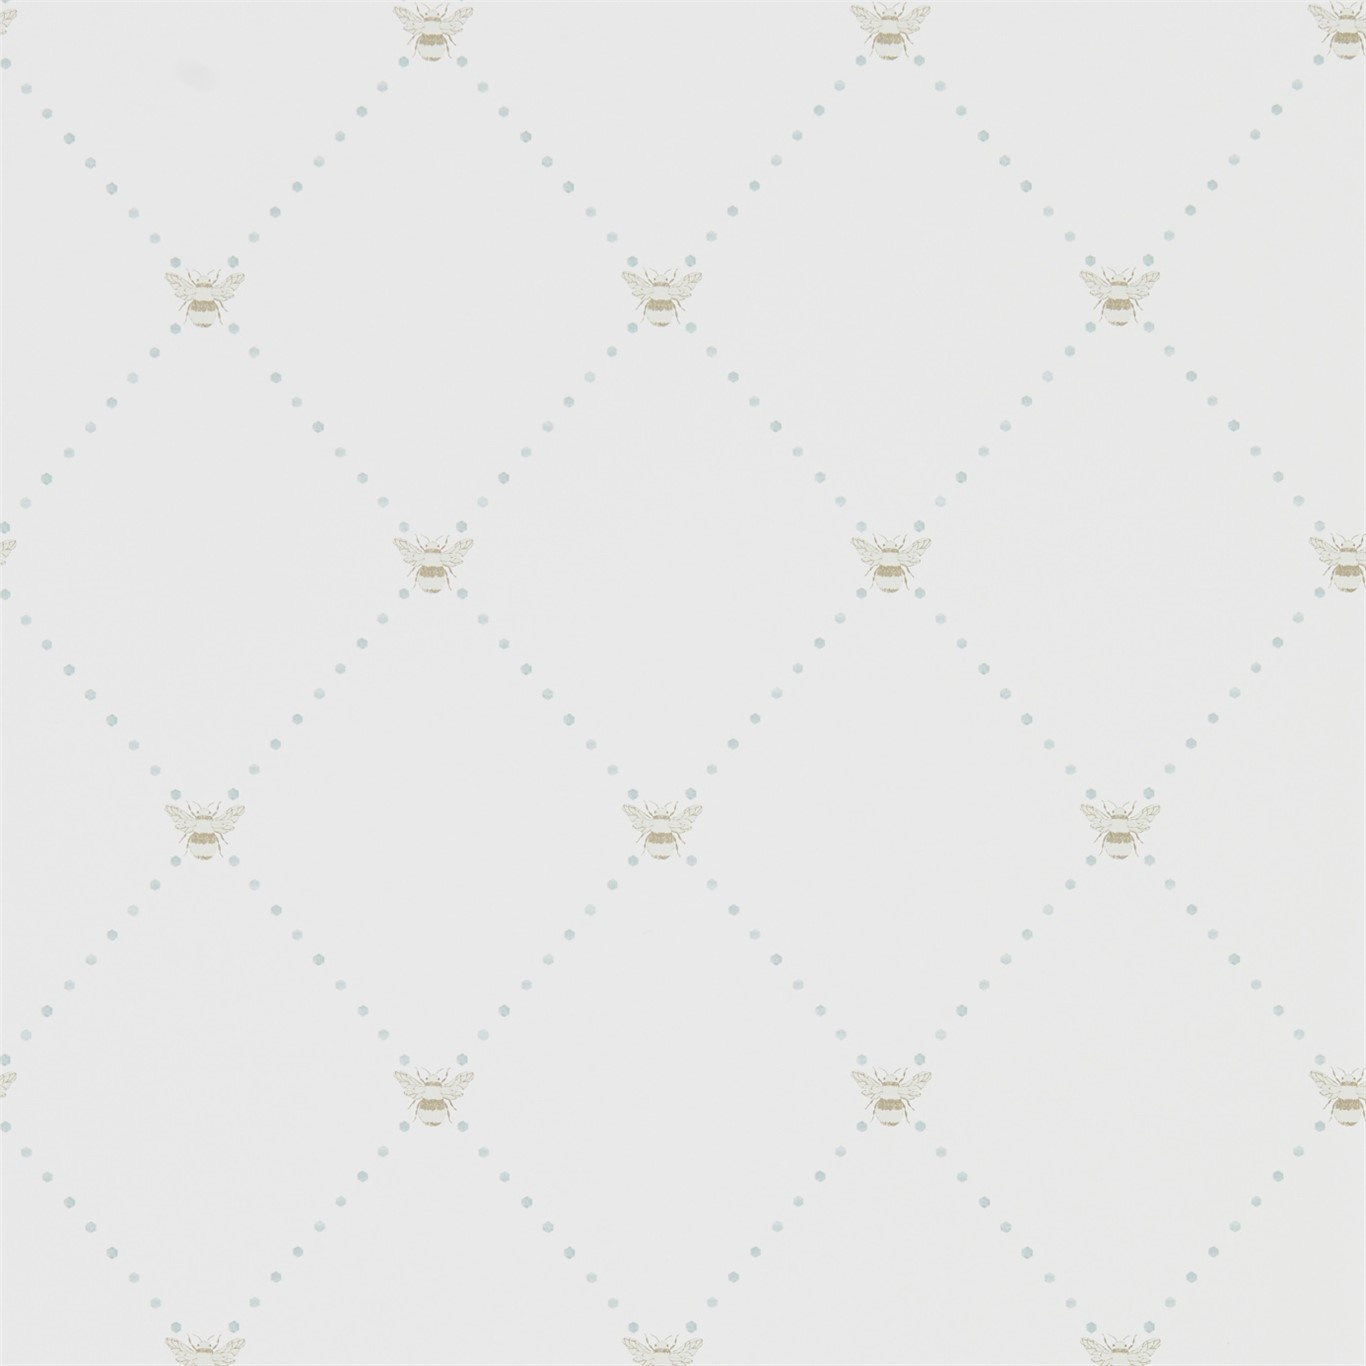 Image of Sanderson Home Nectar Mineral/Dove Wallpaper 216354